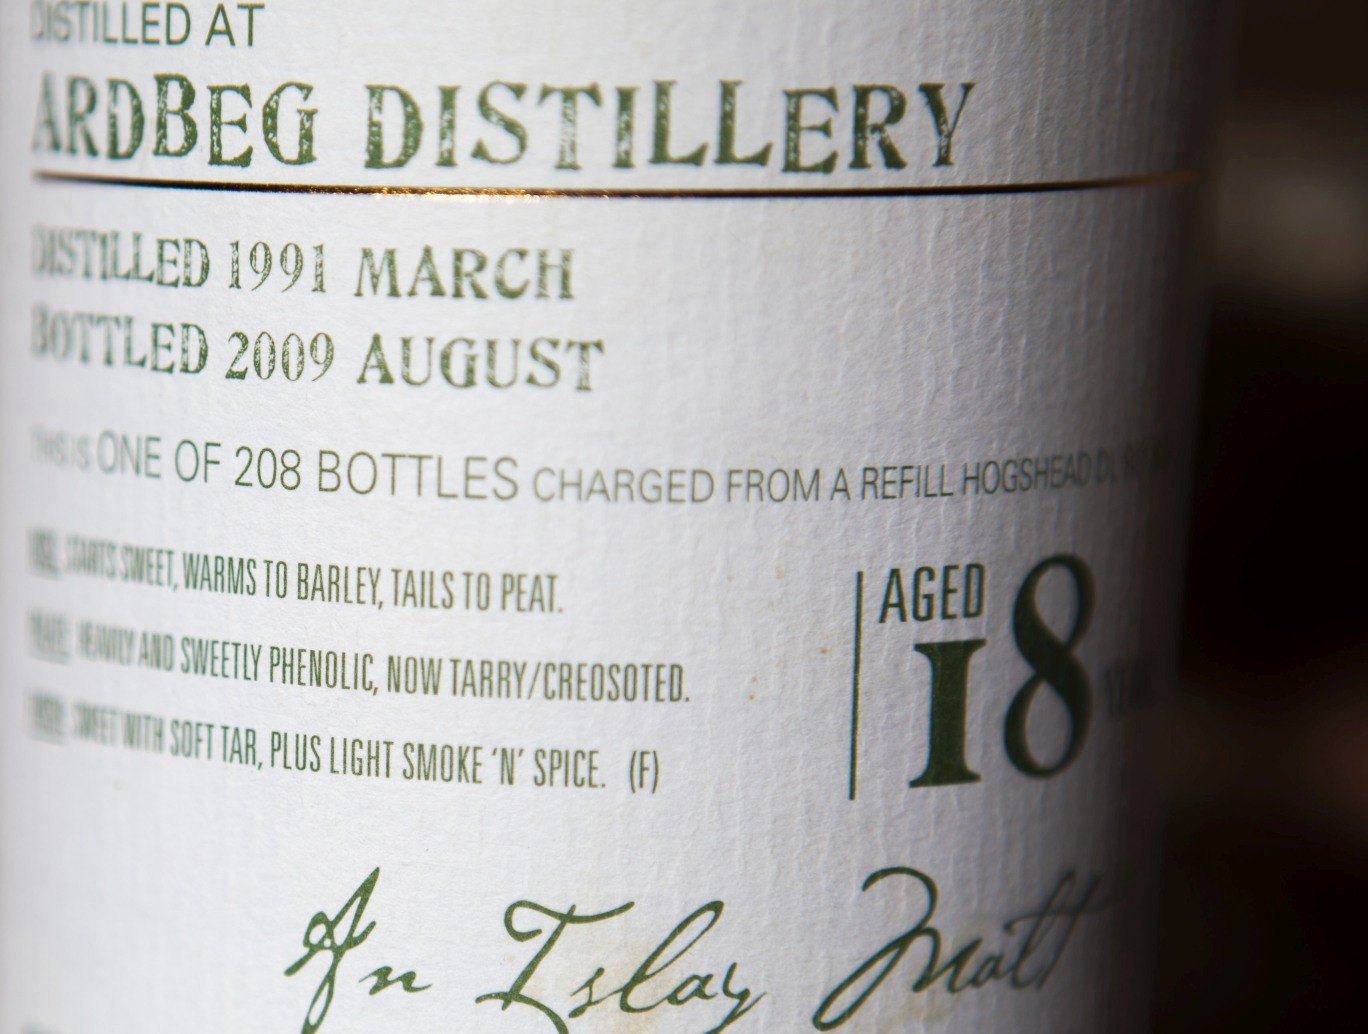 Douglas Laing Ardbeg 18yr 1991 Old Malt Cask Whisky Review